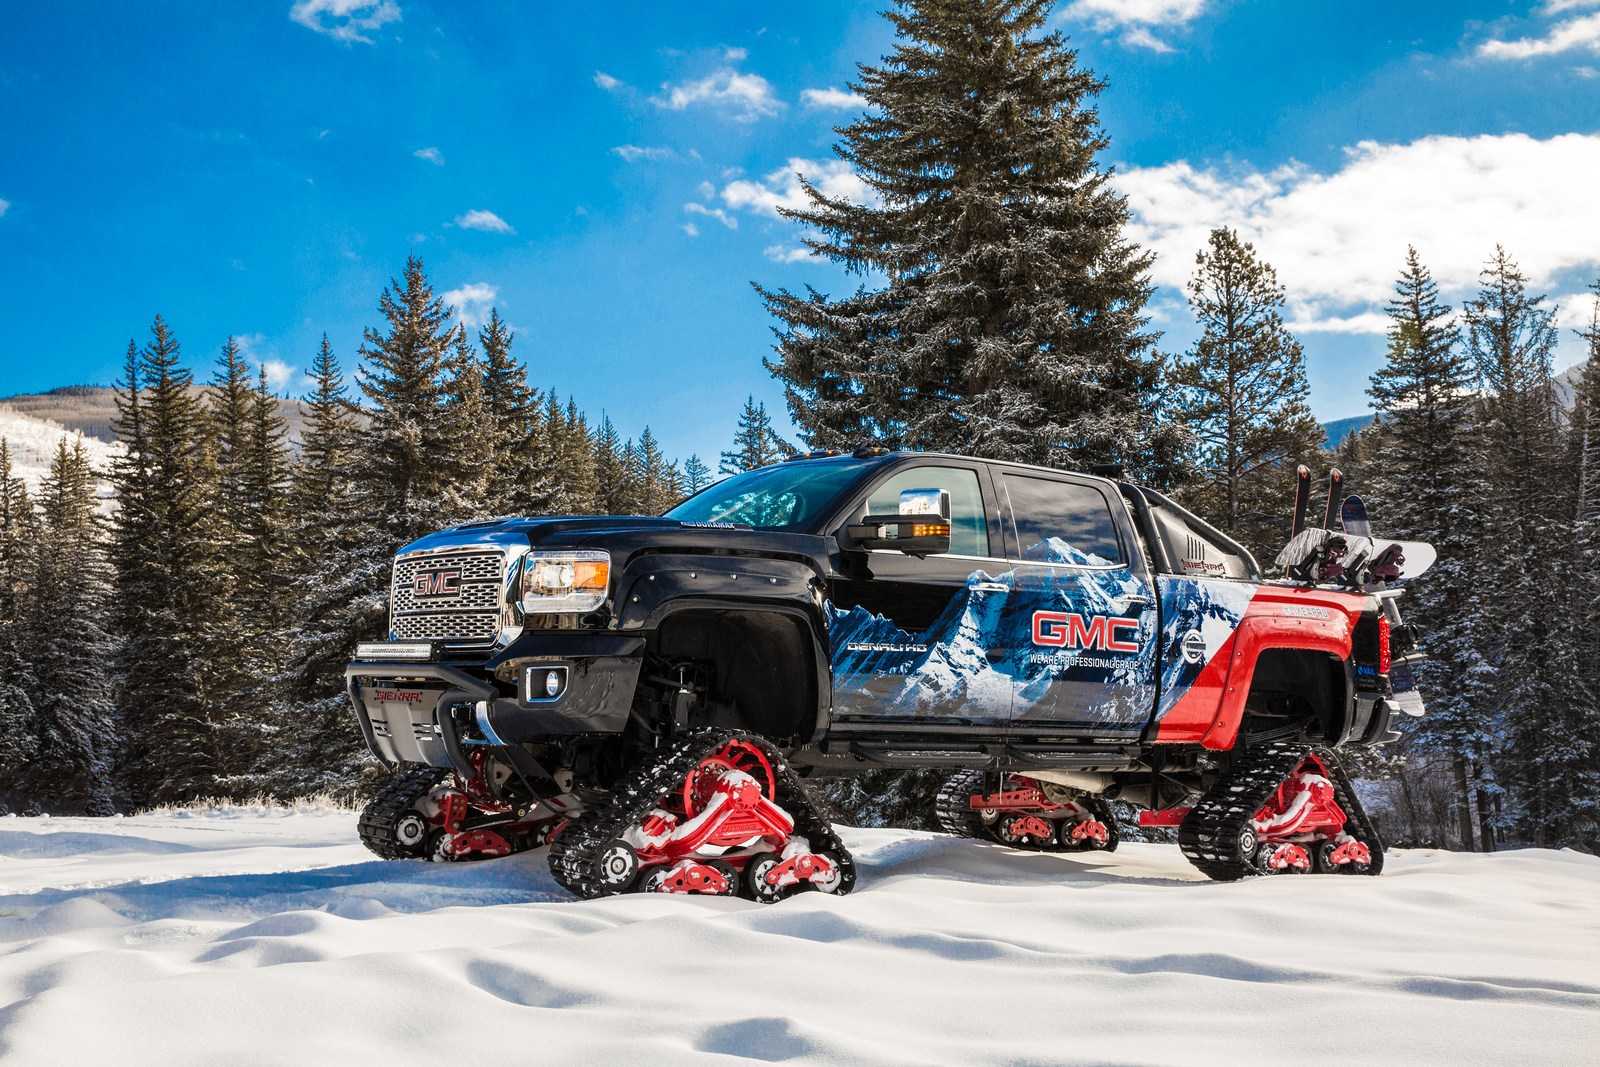 hight resolution of 2018 gmc sierra hd takes on snow covered mountains with rubber tracks